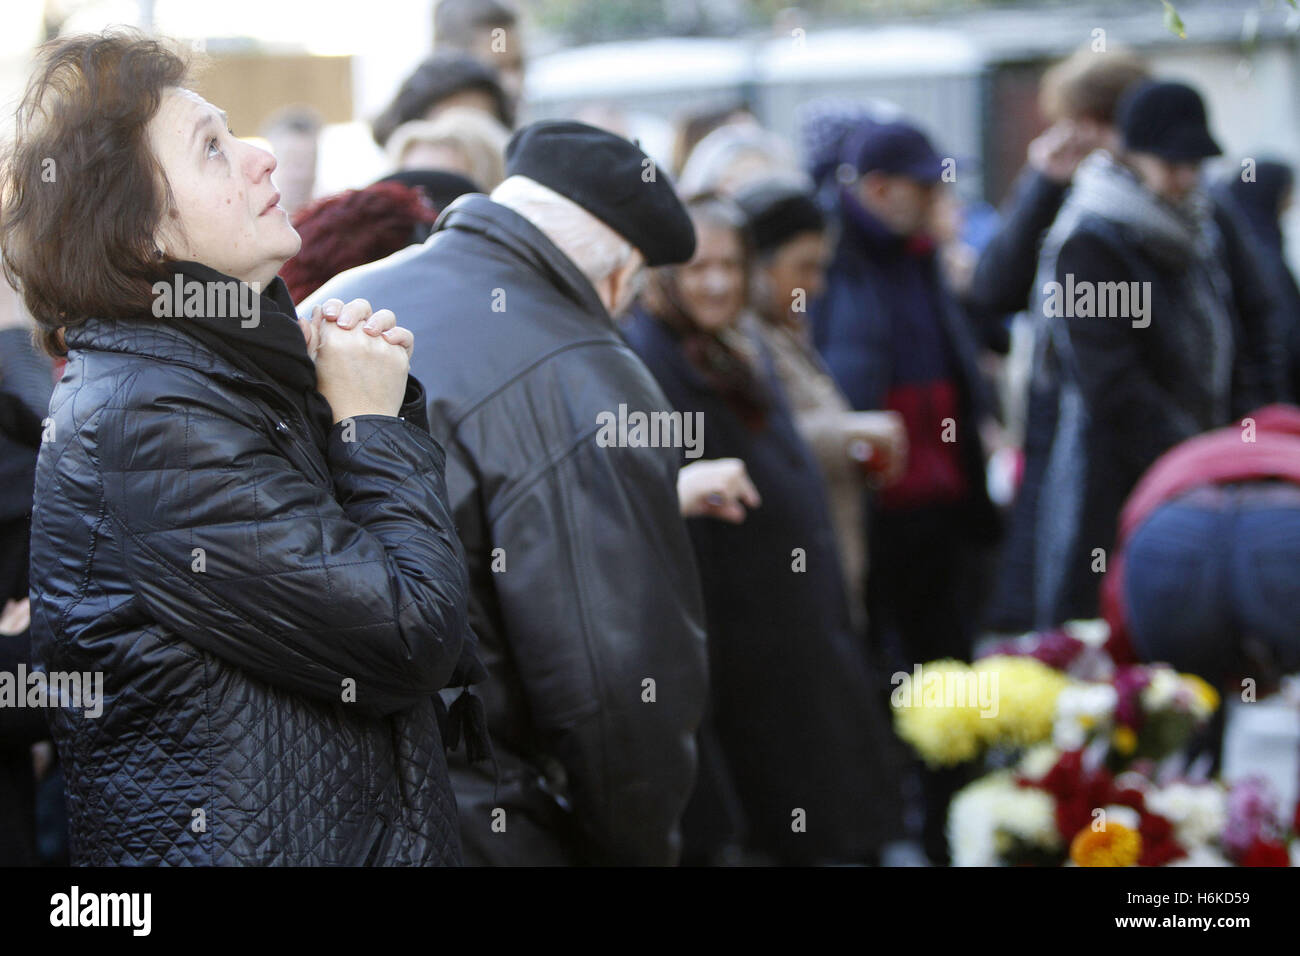 Bucharest, Romania. 30th Oct, 2016. People commemorate the victims of the Colectiv nightclub fire that killed 64 - Stock Image